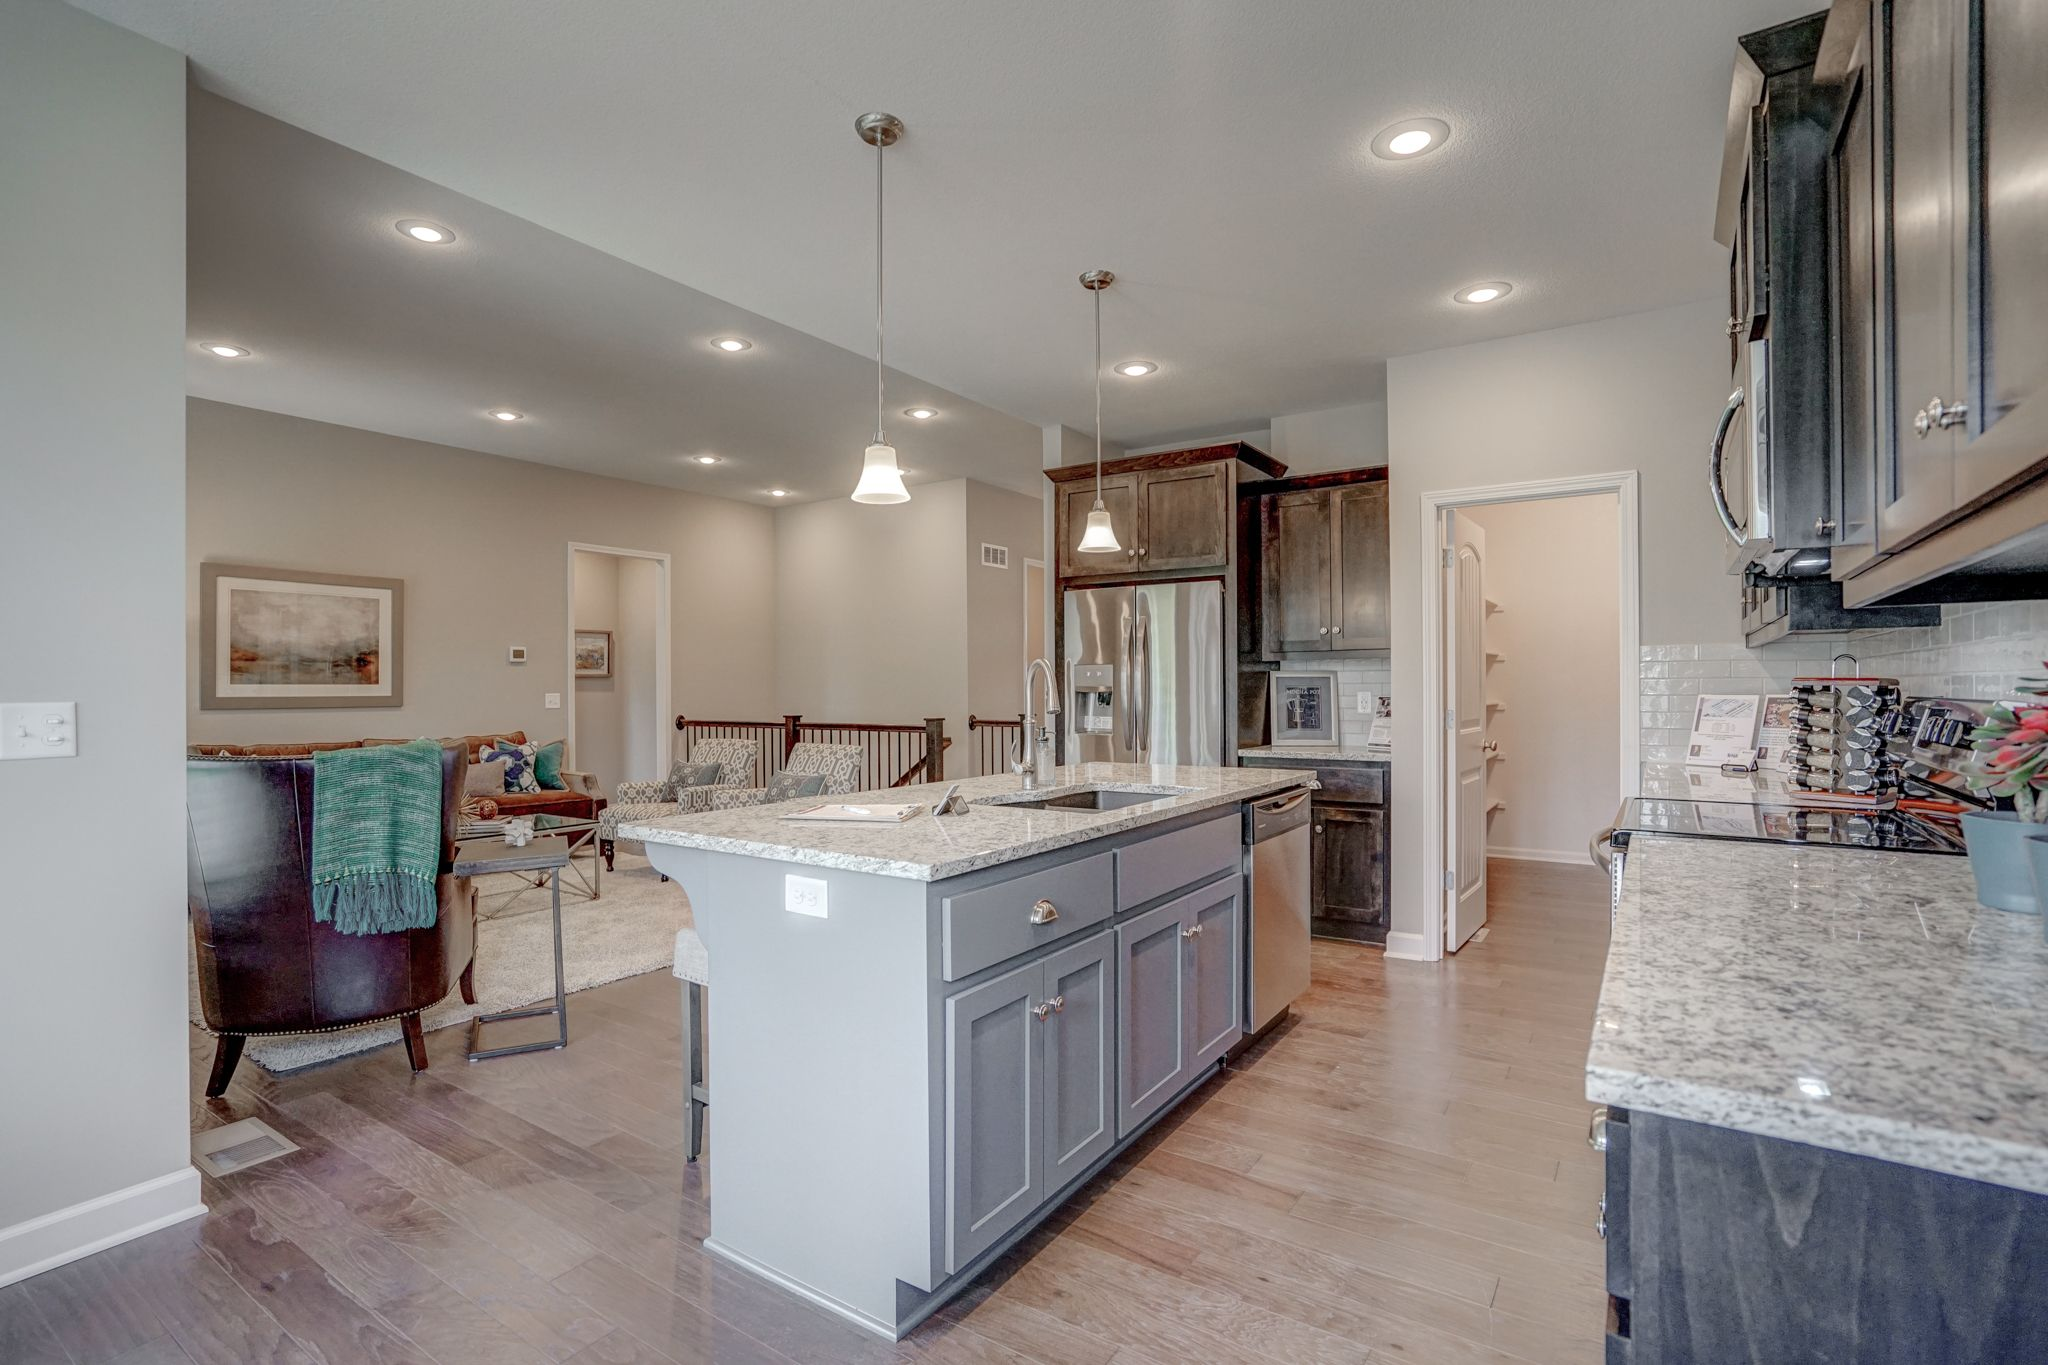 Kitchen featured in the Cypress - IA By Summit Homes in Des Moines, IA